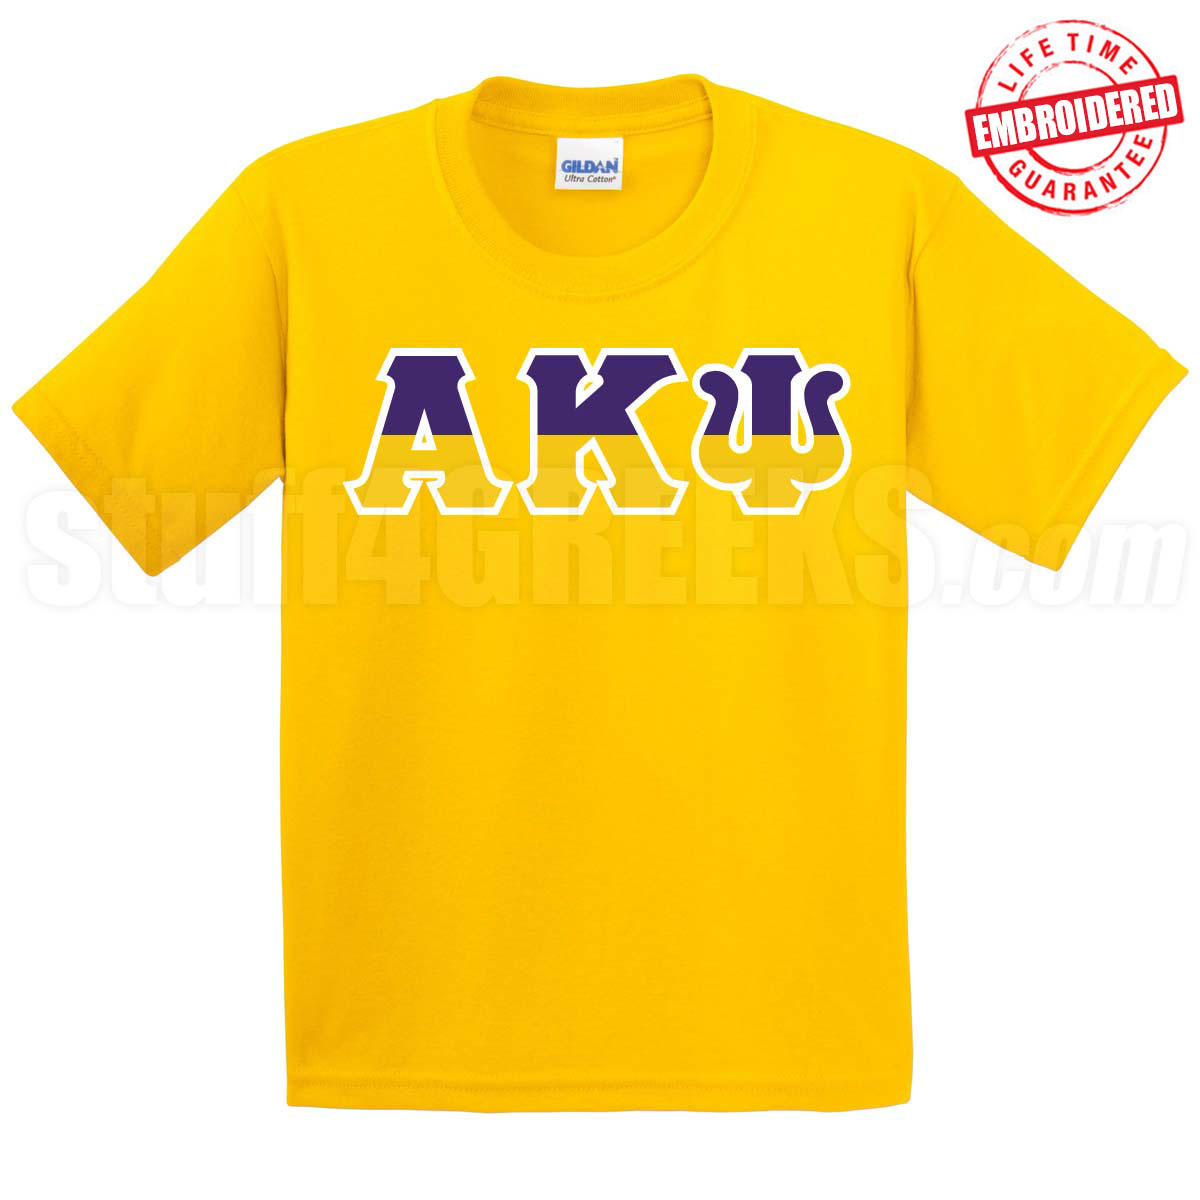 Alpha kappa psi half letters t shirt gold embroidered